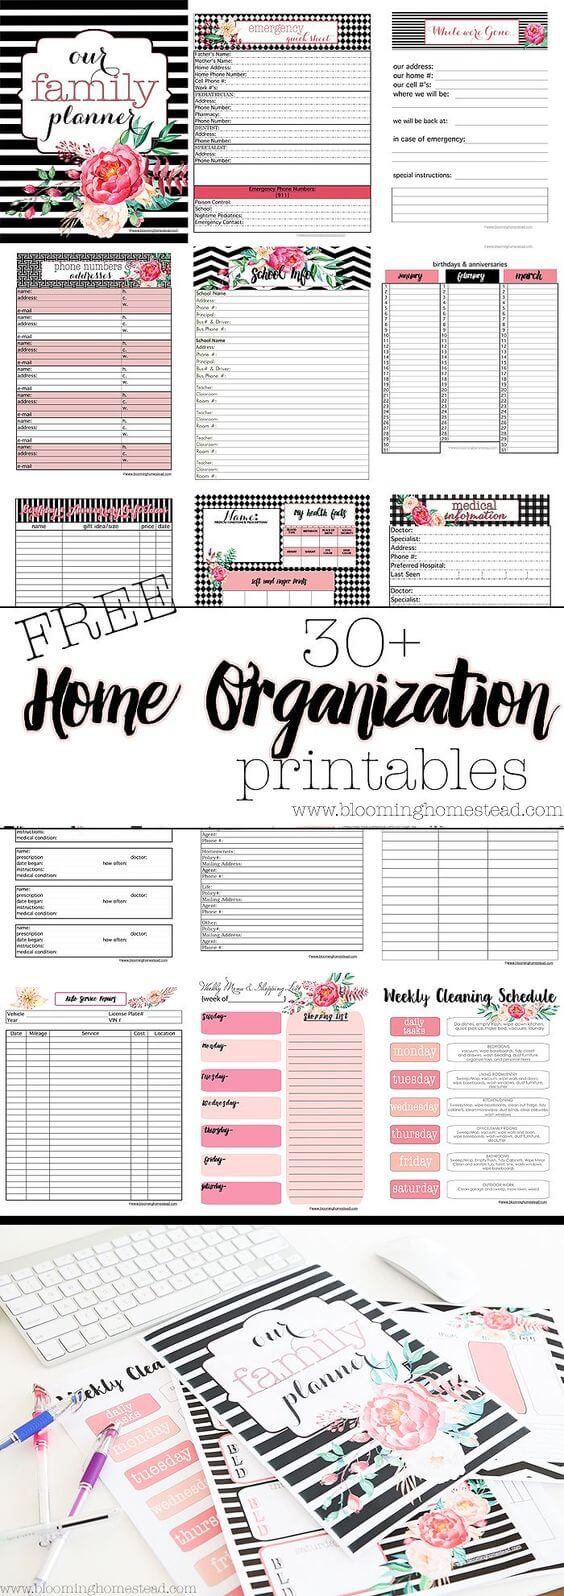 Floral Family Planning Organizer by Blooming Homestead | Parent Organization Hacks featured on Princess Pinky Girl